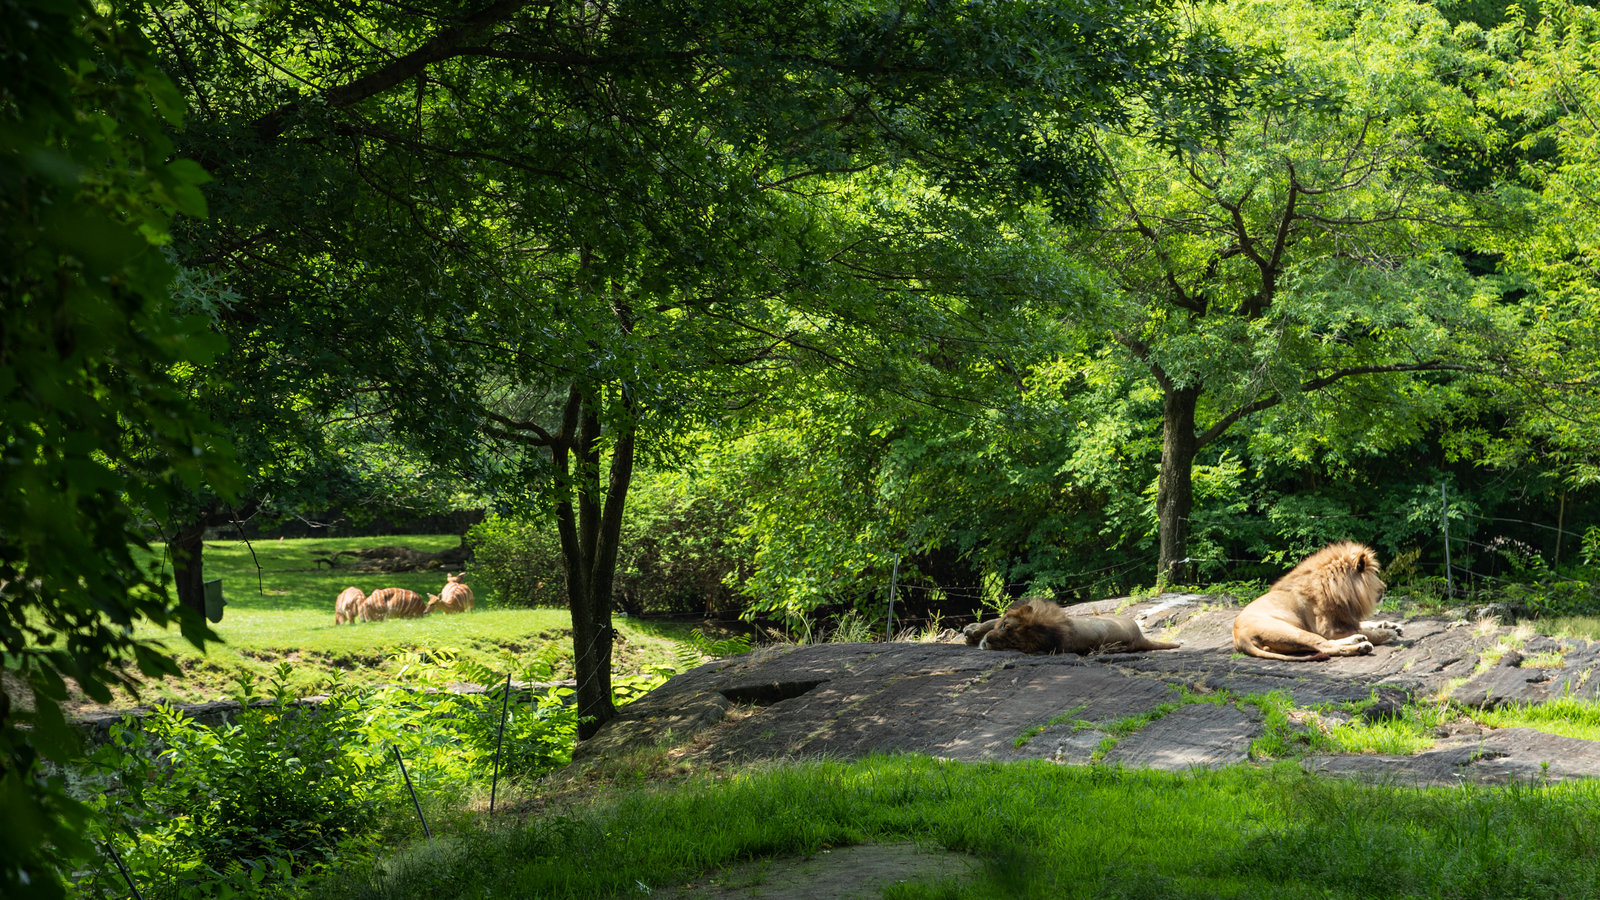 Lions in the Bronx Zoo enclosure.